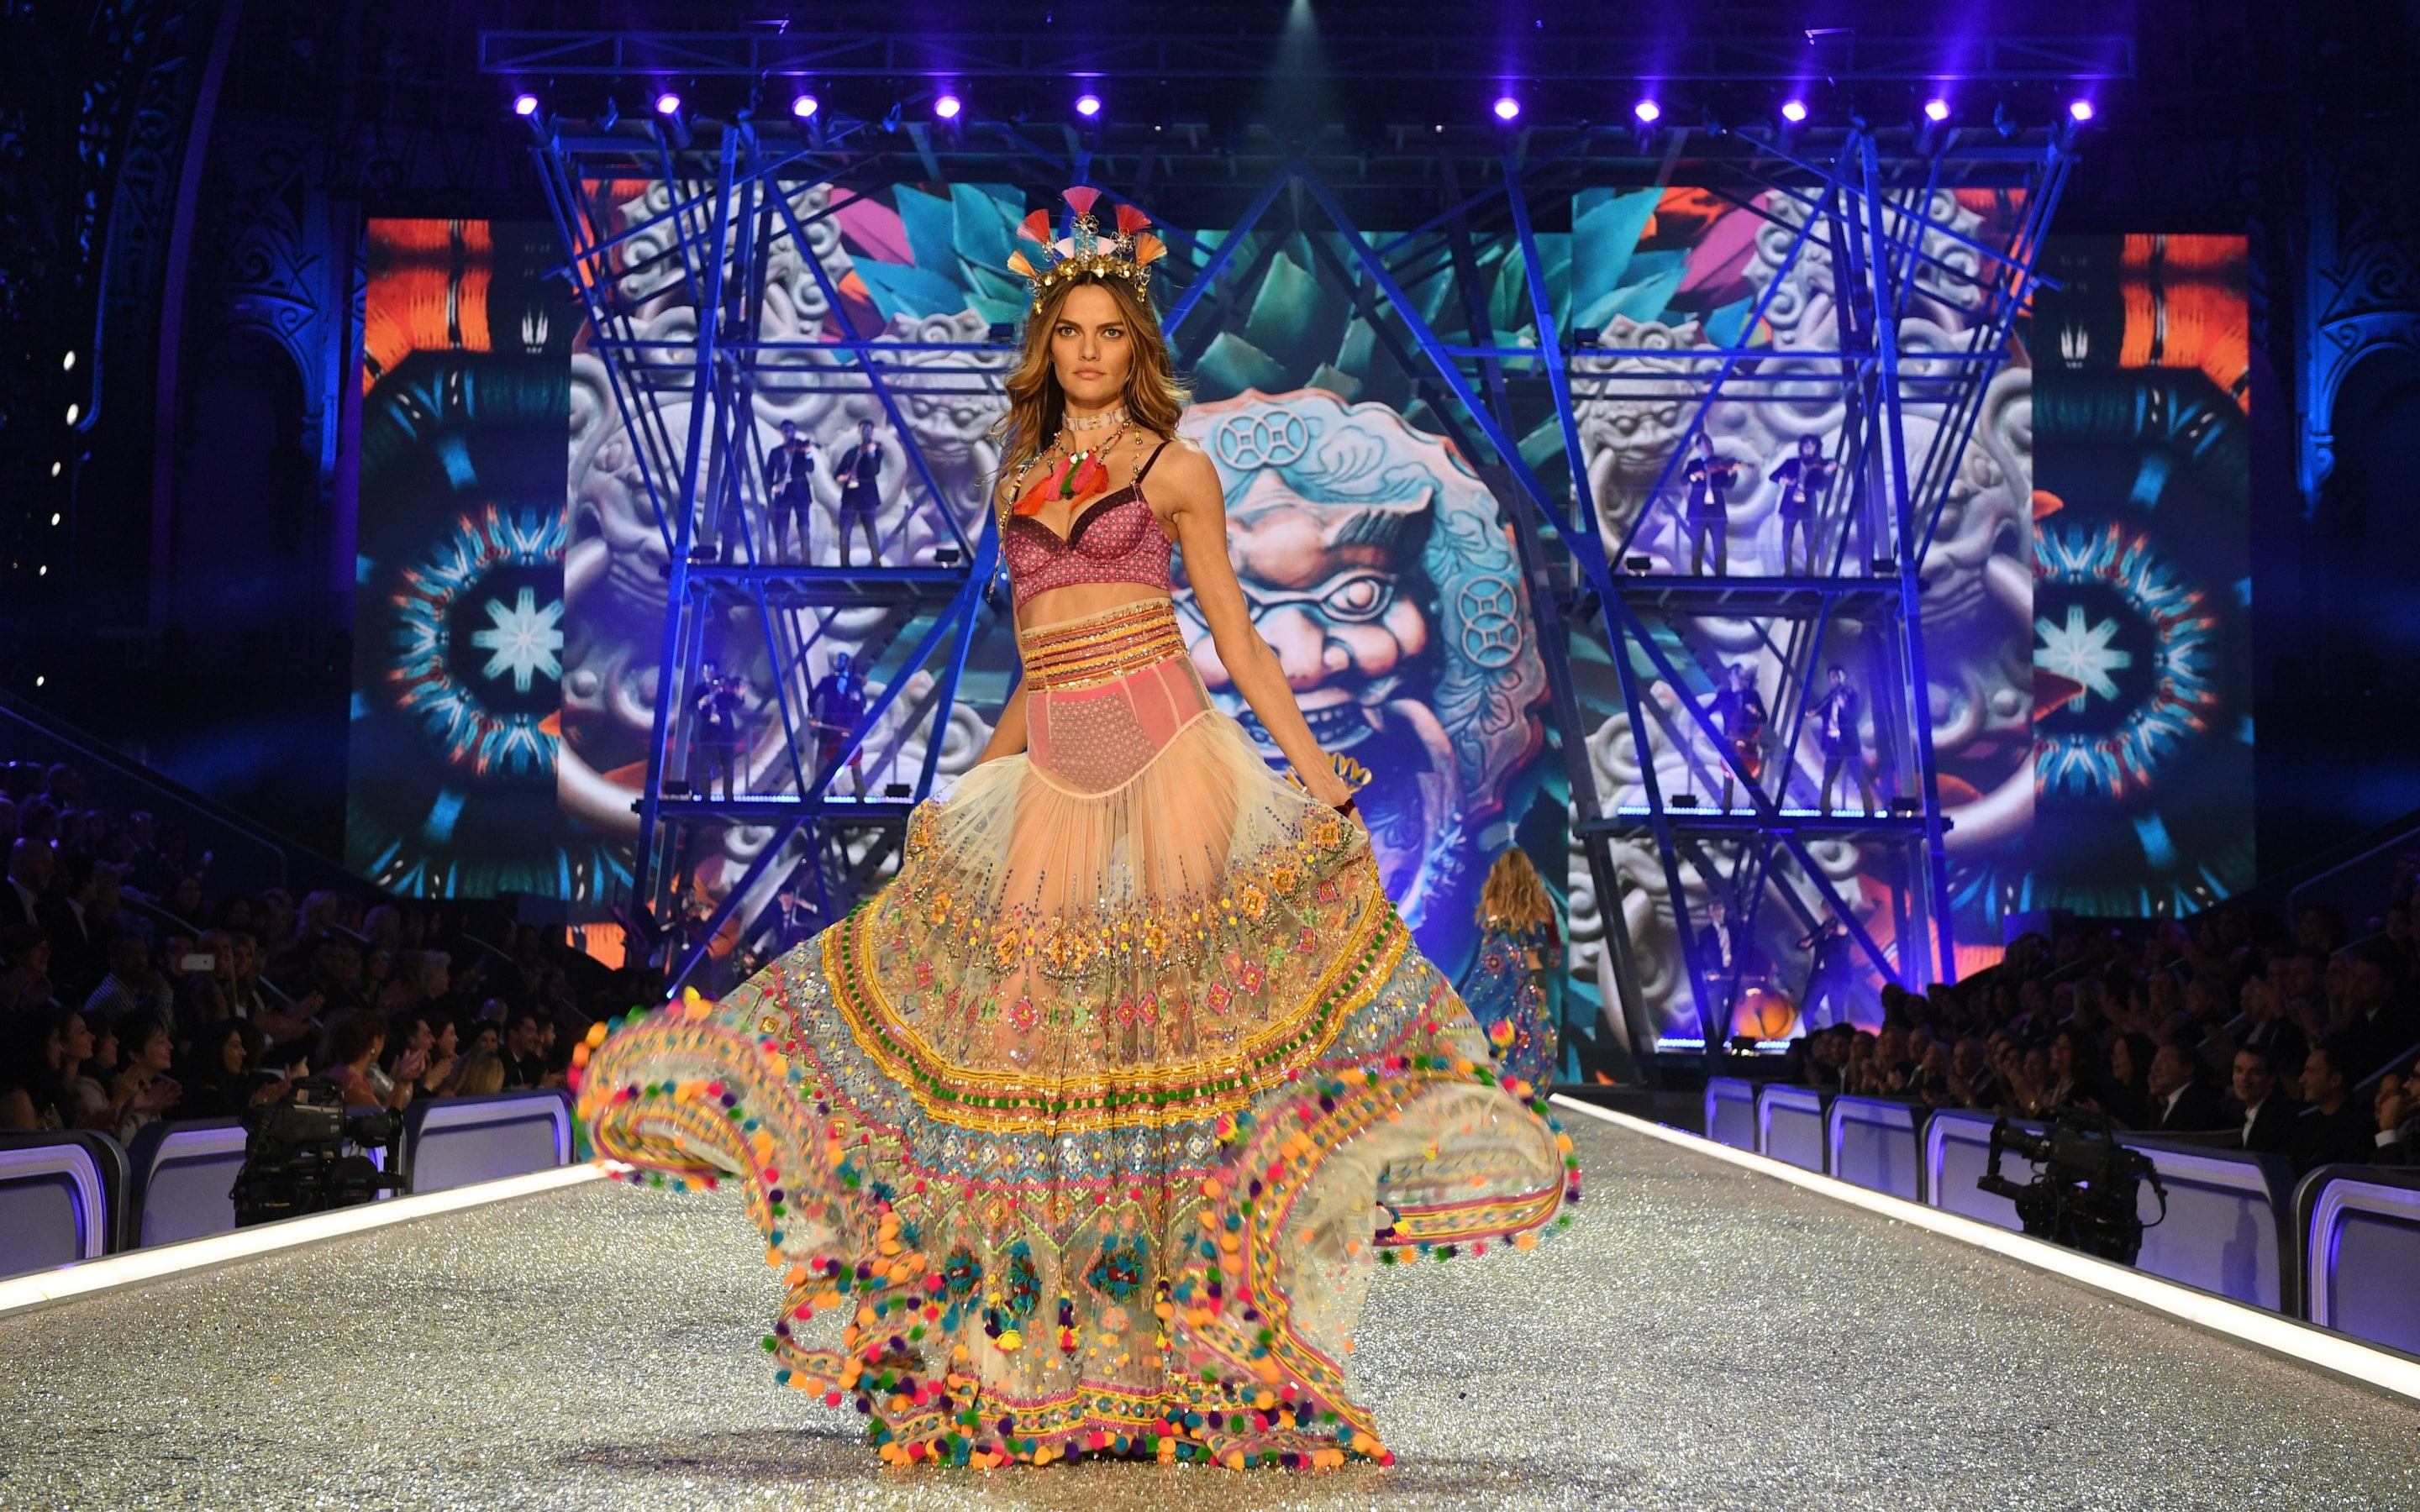 Victoria s Secret Fashion Show 2016  Inside the world of  3million     Pom poms and embroidery featured on the 2016 Victoria s Secret catwalk